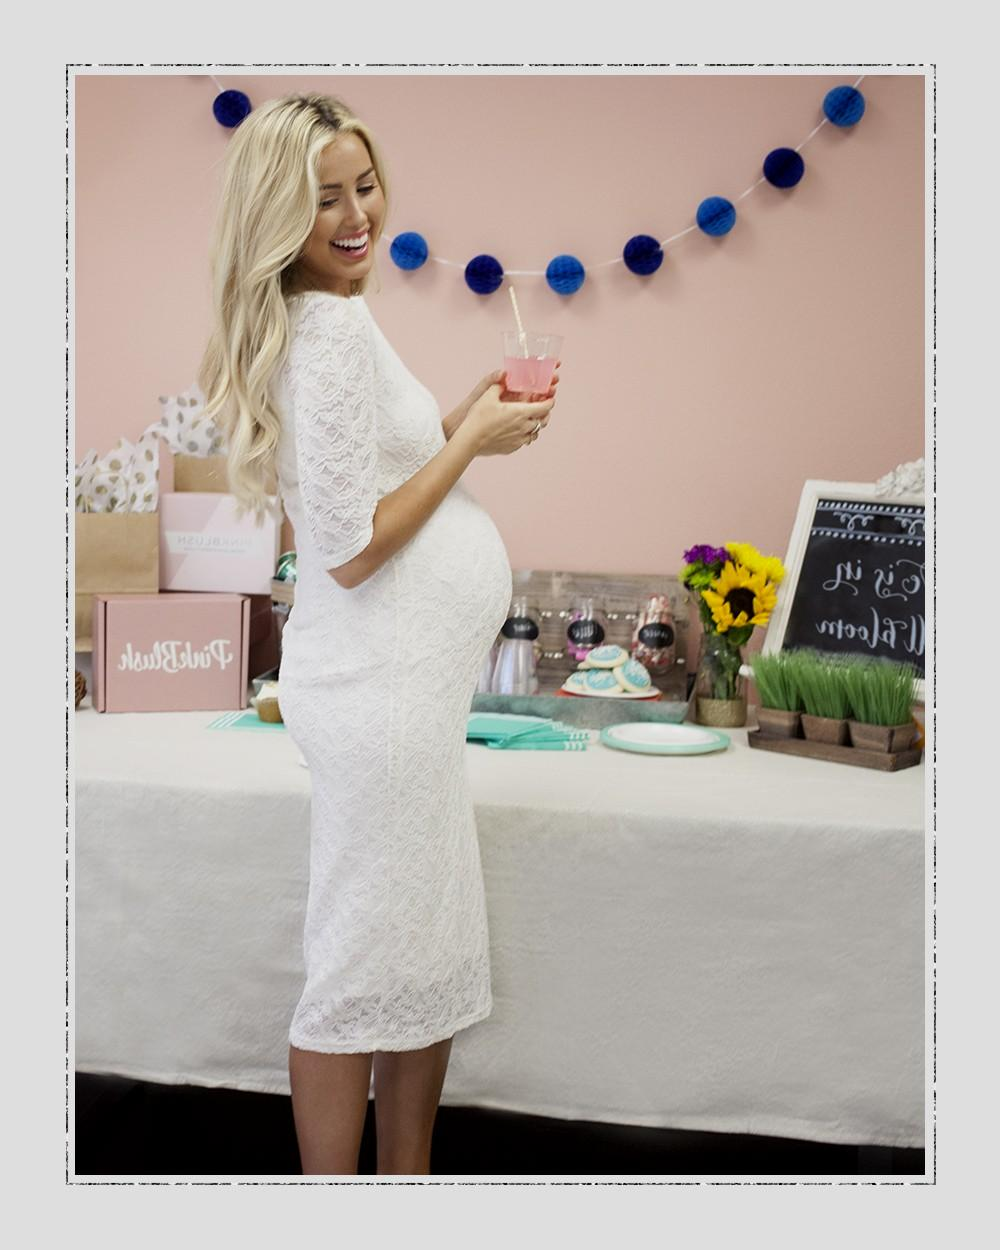 Full Size of Baby Shower:alluring Baby Shower Dresses Cute Baby Shower Outfits For Mom Maternity Maxi Dresses Maternity Dresses Maternity Gown Style